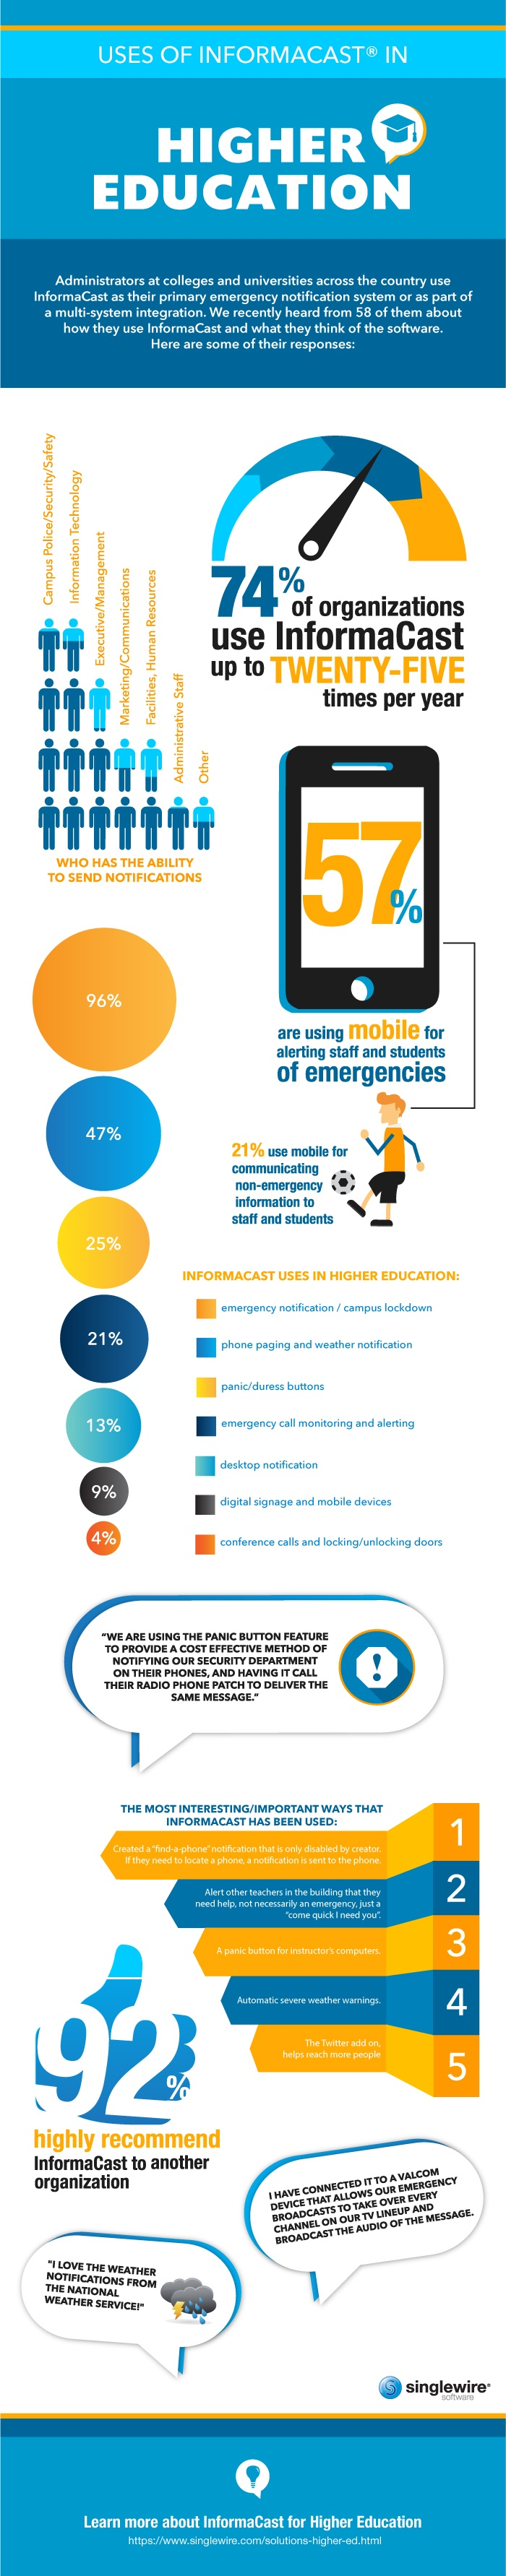 InformaCast in Higher Education Infographic